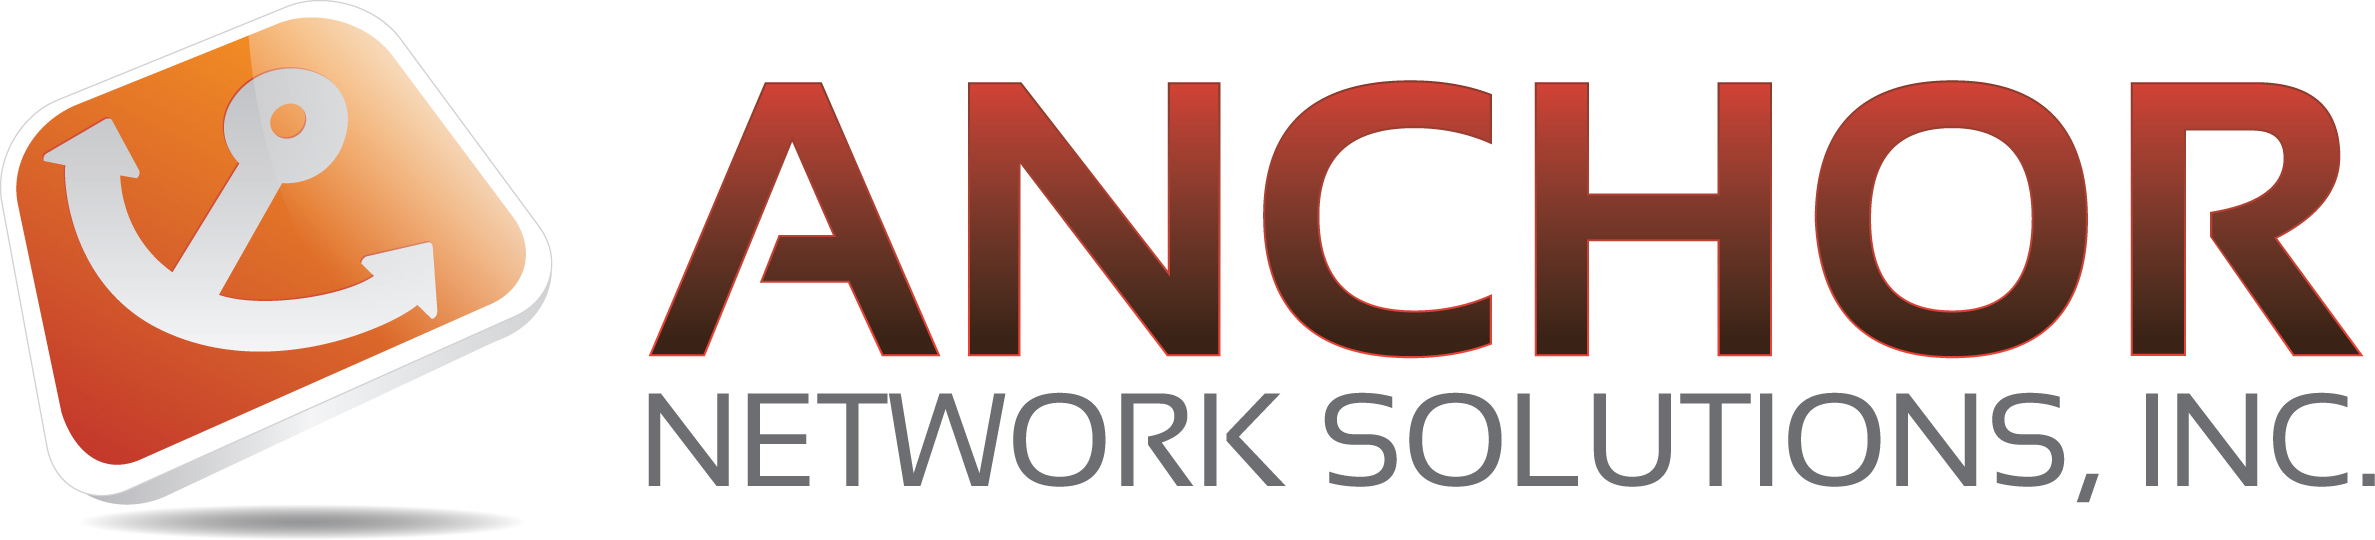 10 Questions With: Vince Tinnirello of Anchor Network Solutions — Denver